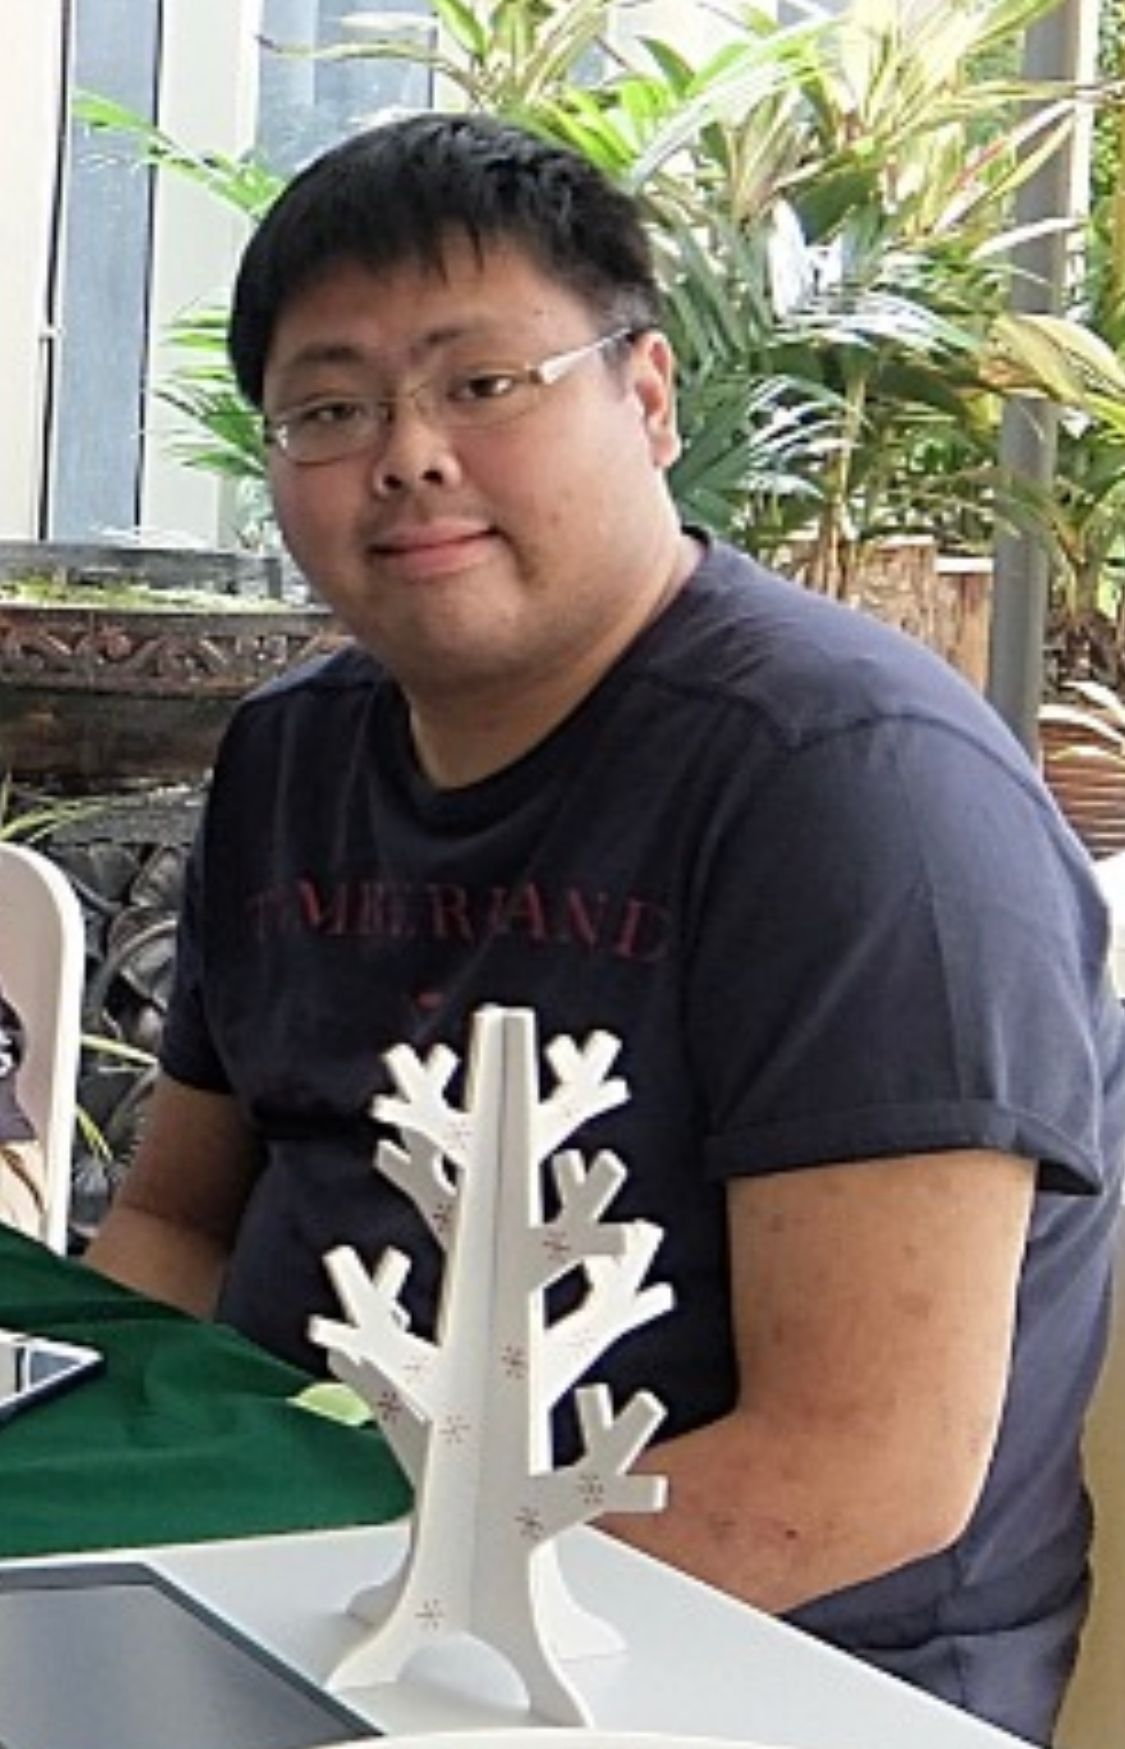 James, in short black hair, spectacles and a black T-shirt, sits at a table.